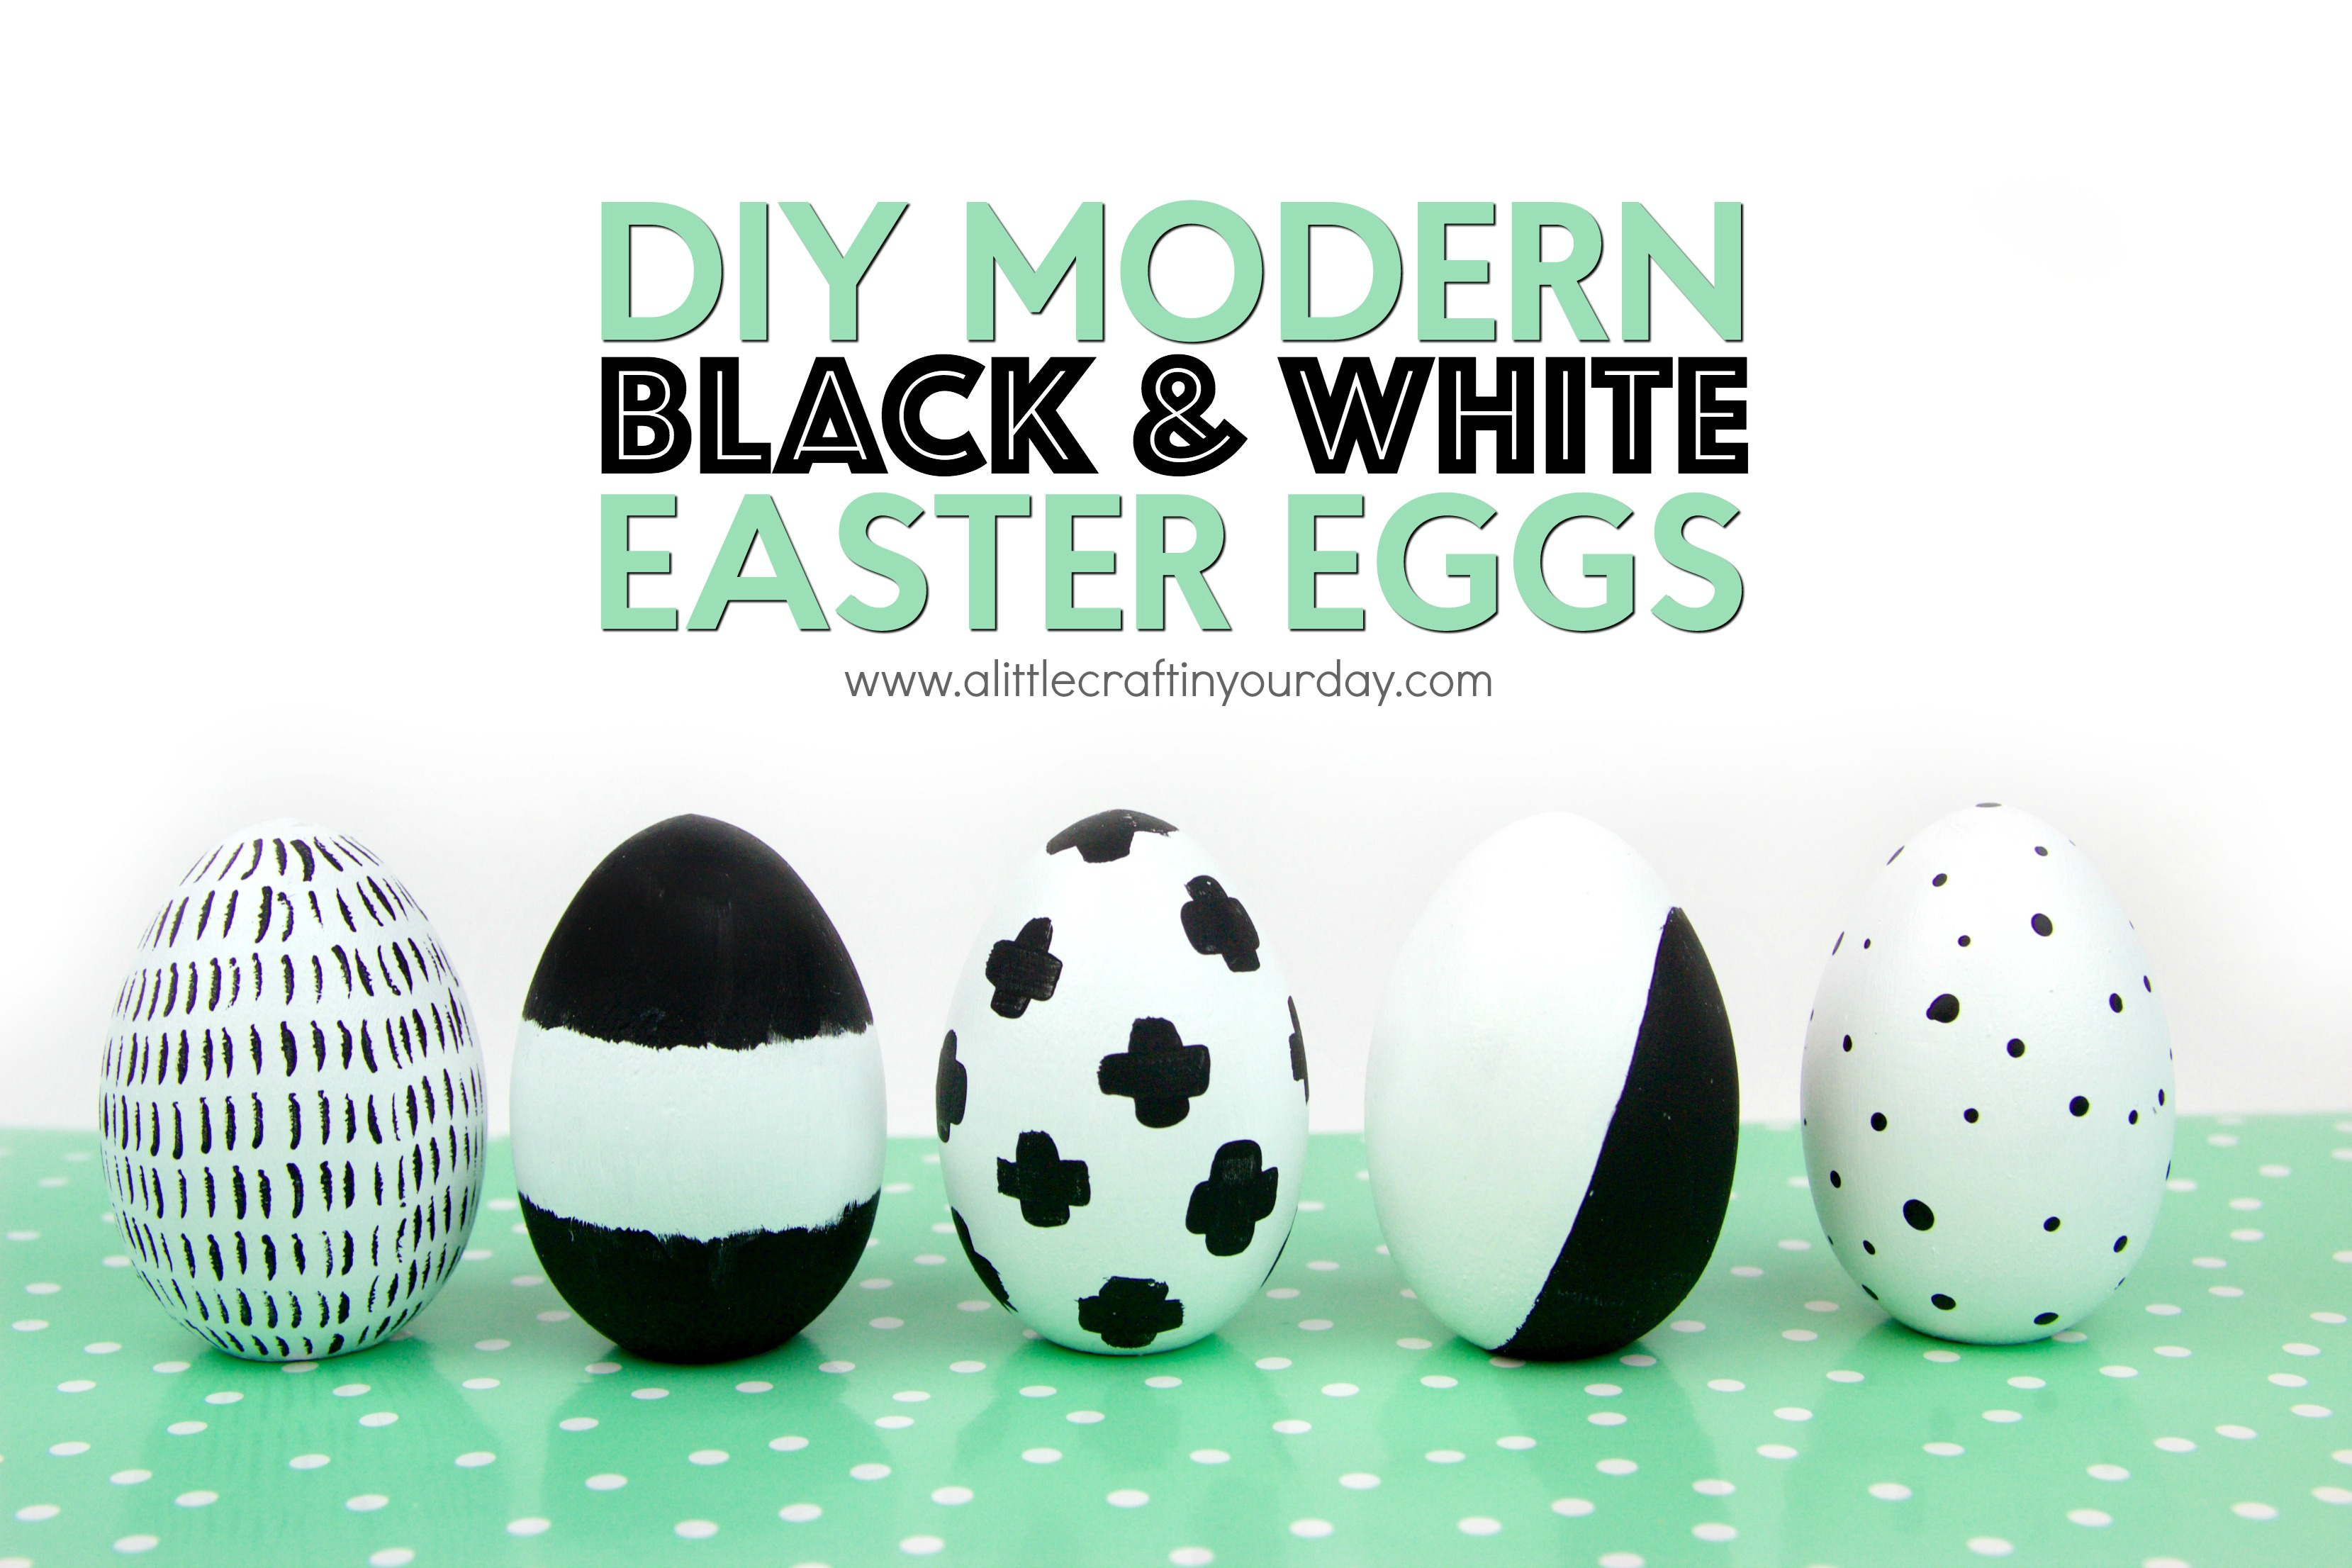 DIY_Modern_Black_and_white_easter_eggs